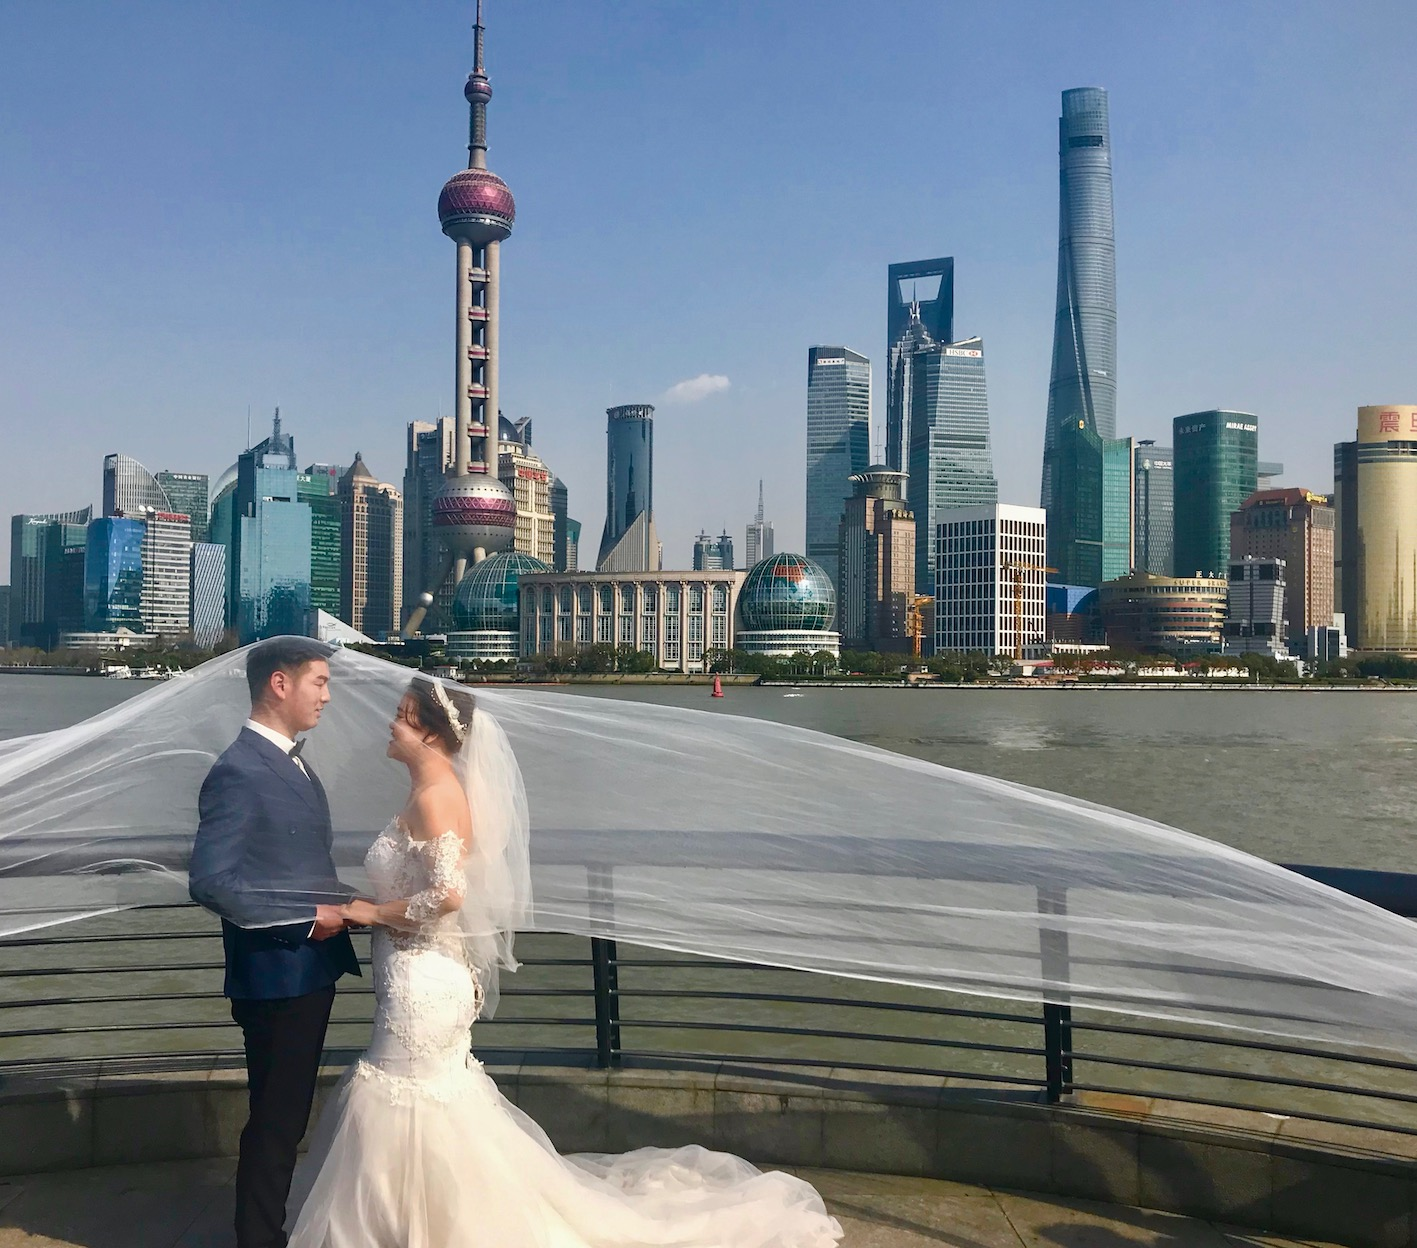 Wedding photos overlooking The Pudong Shanghai.